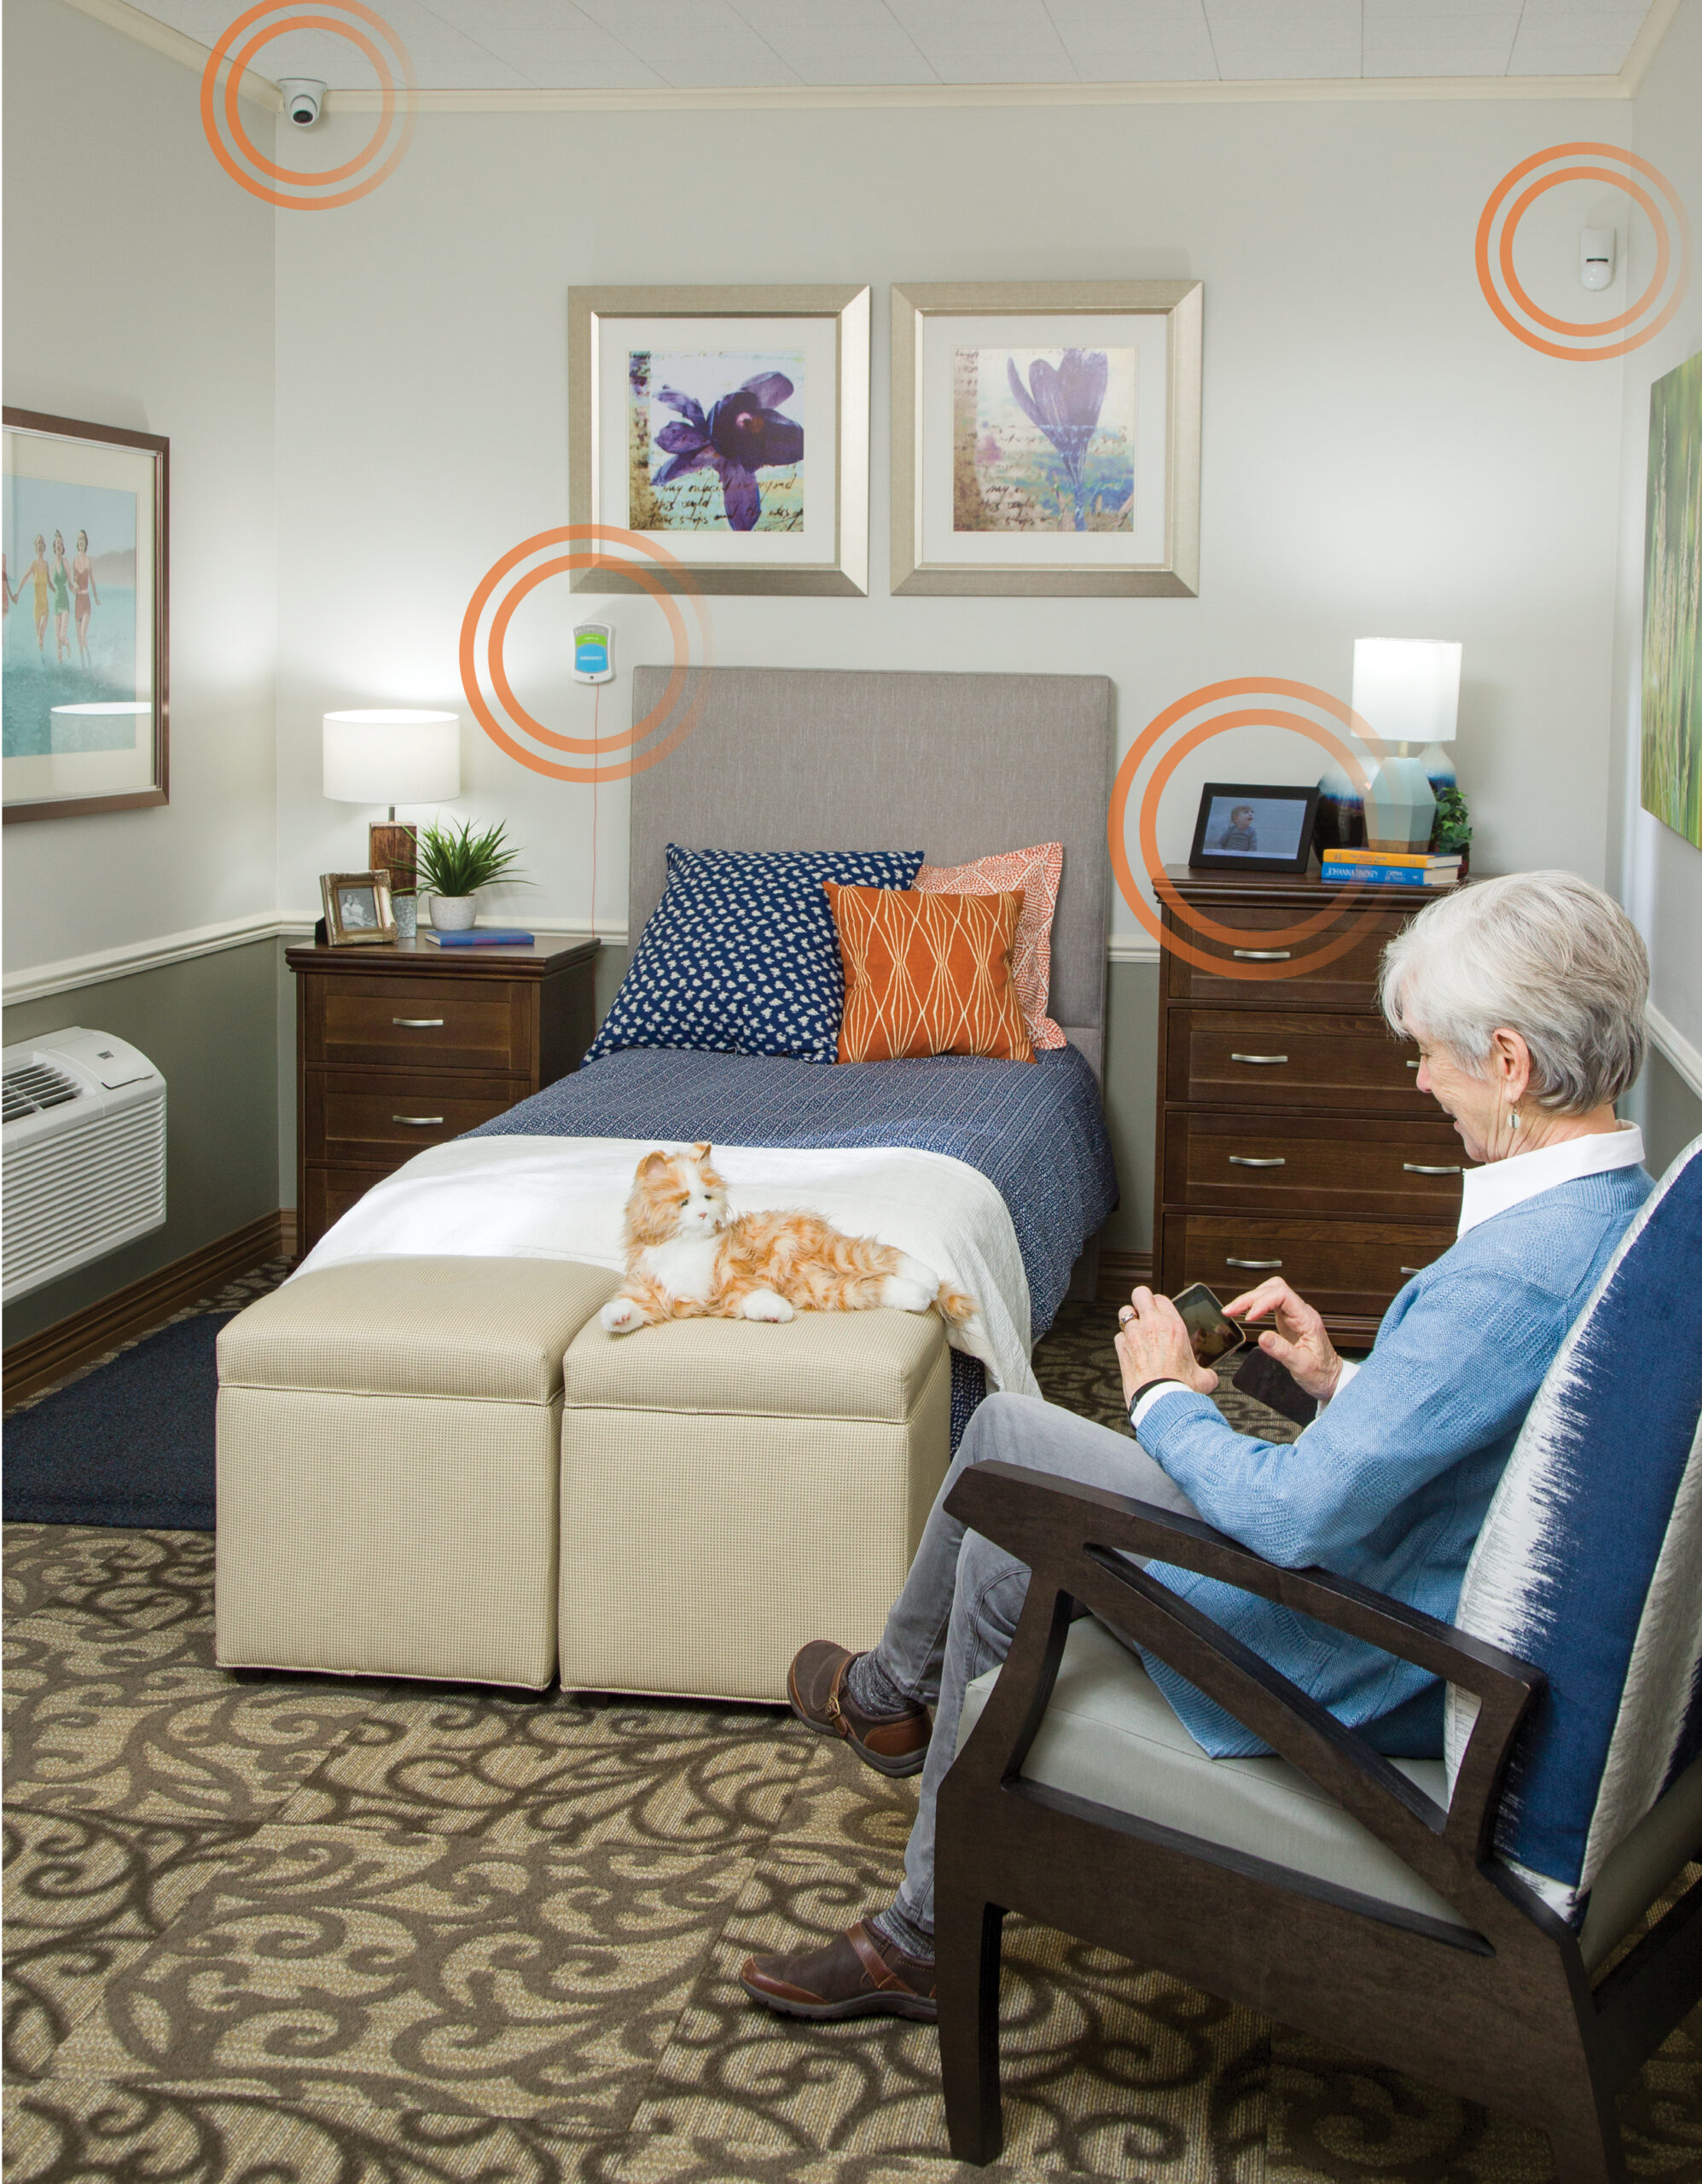 Woman in resident room with tech circles